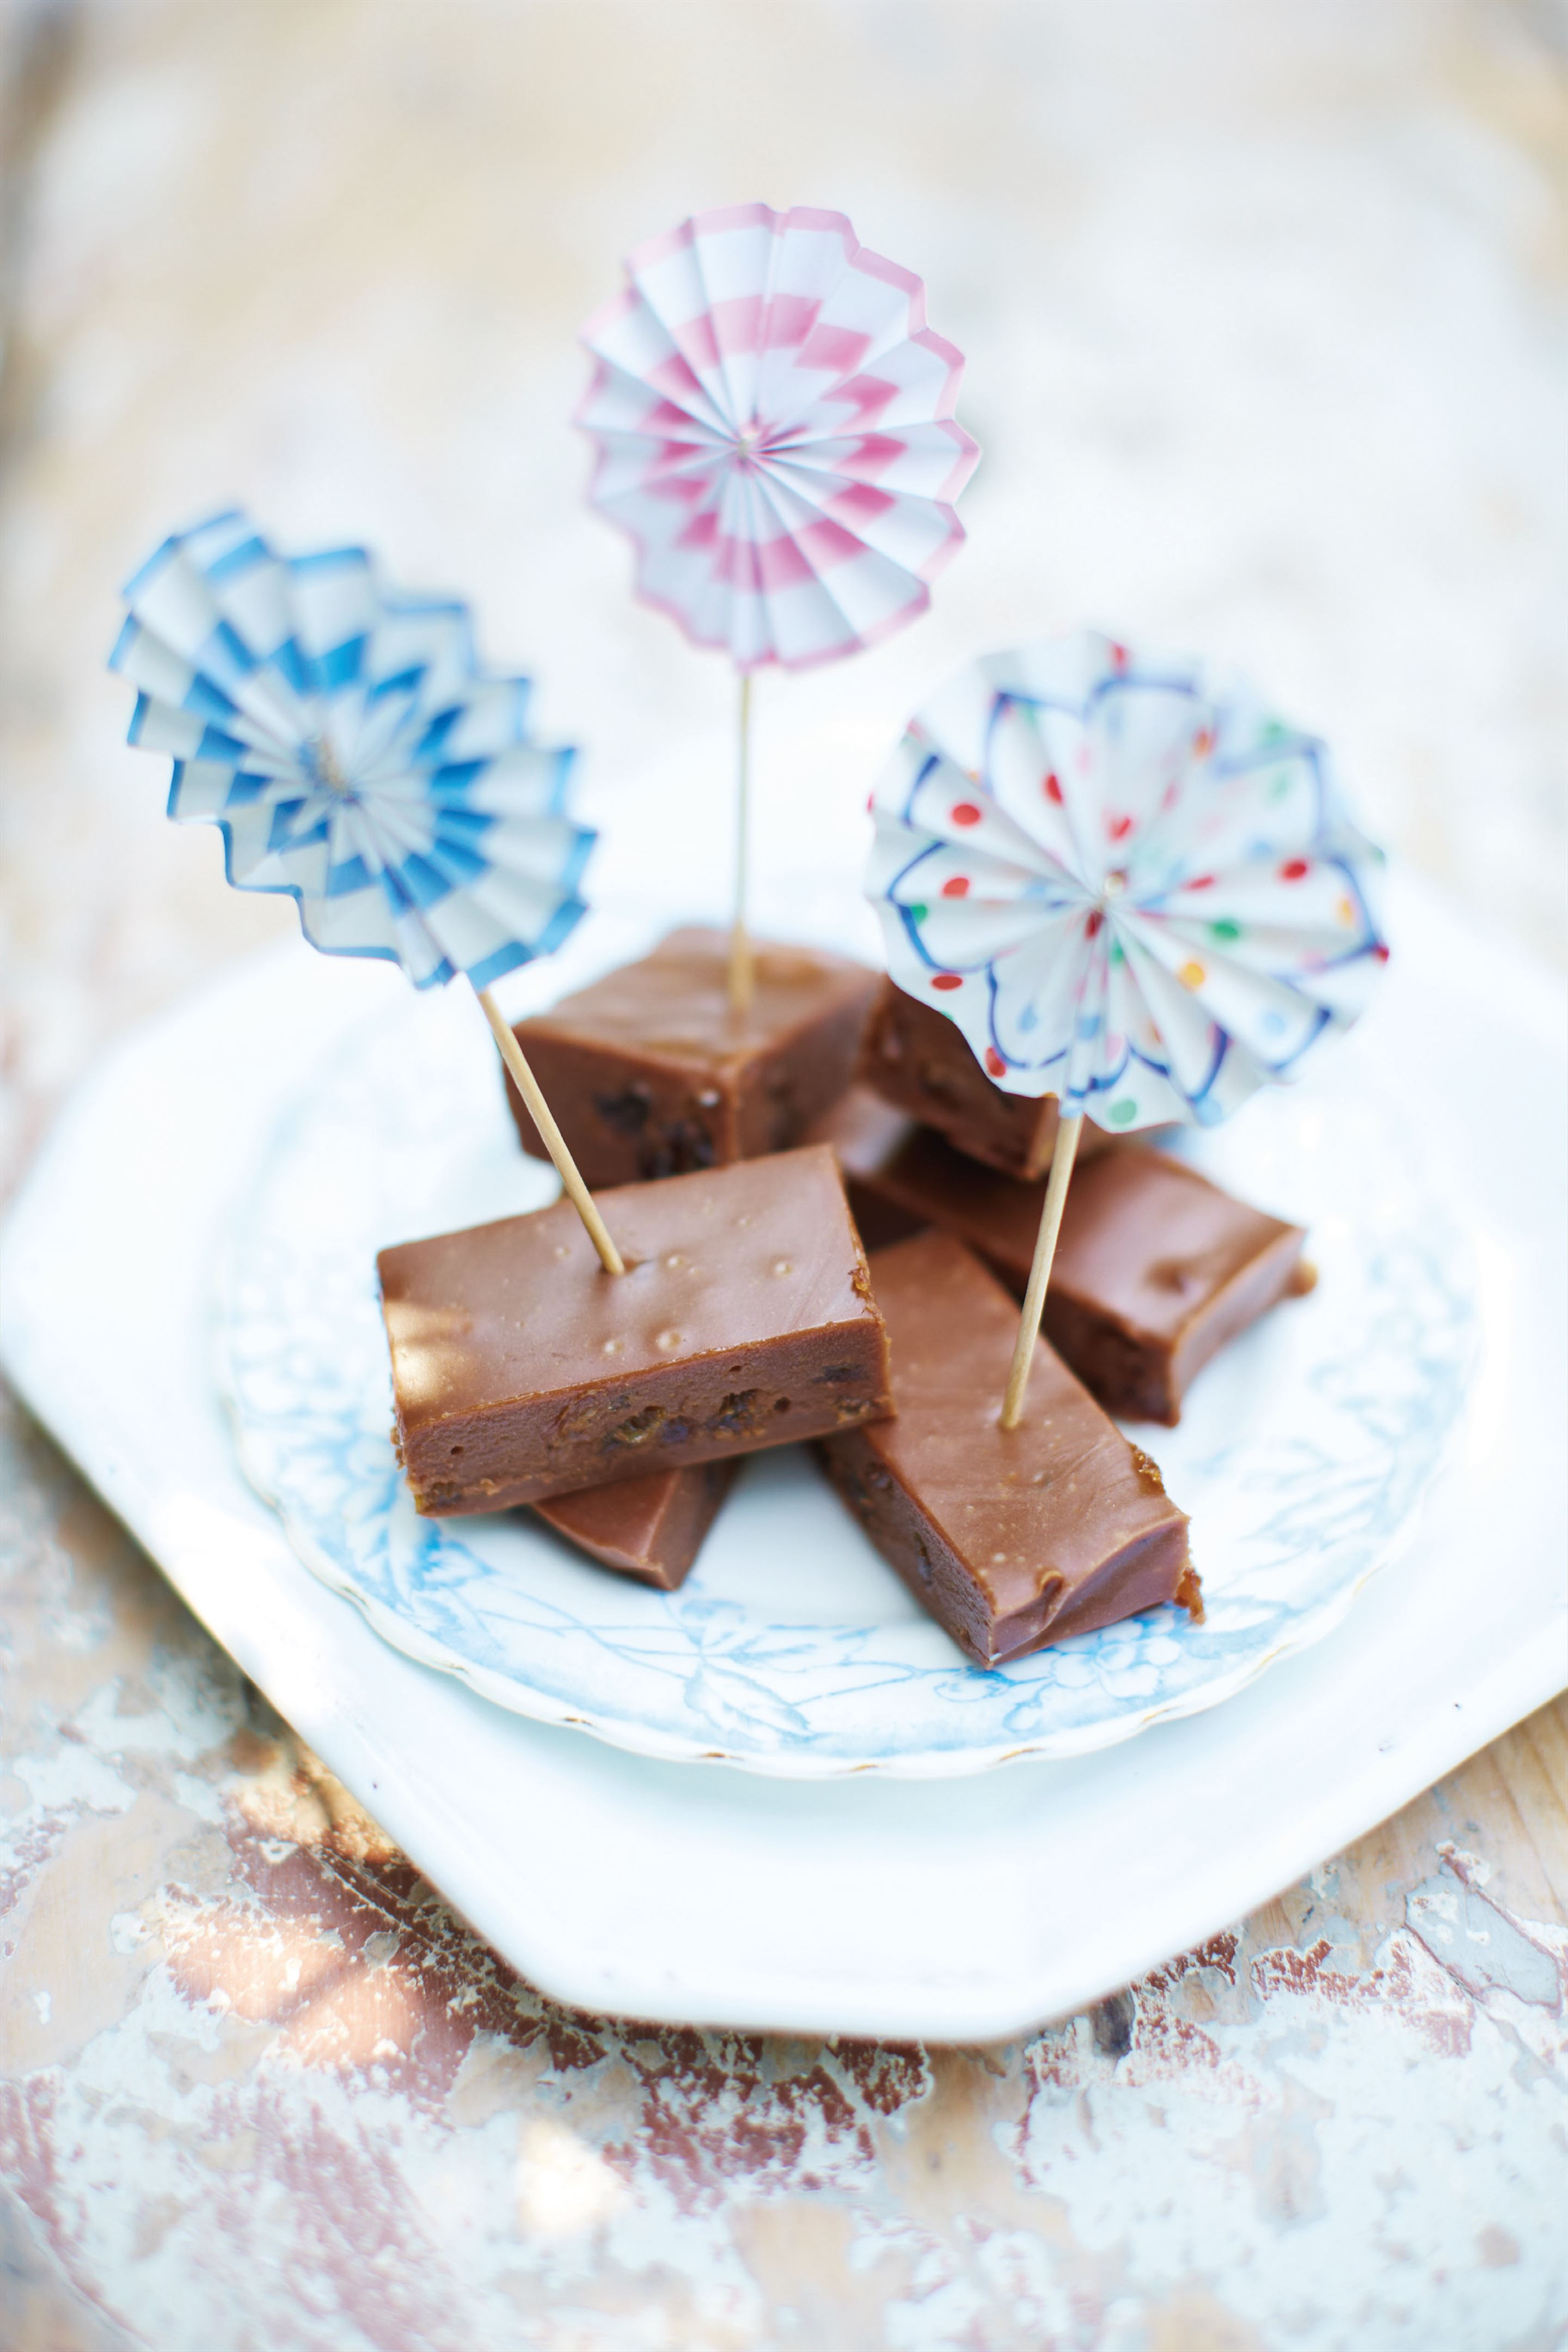 Chocolate rum and raisin fudge